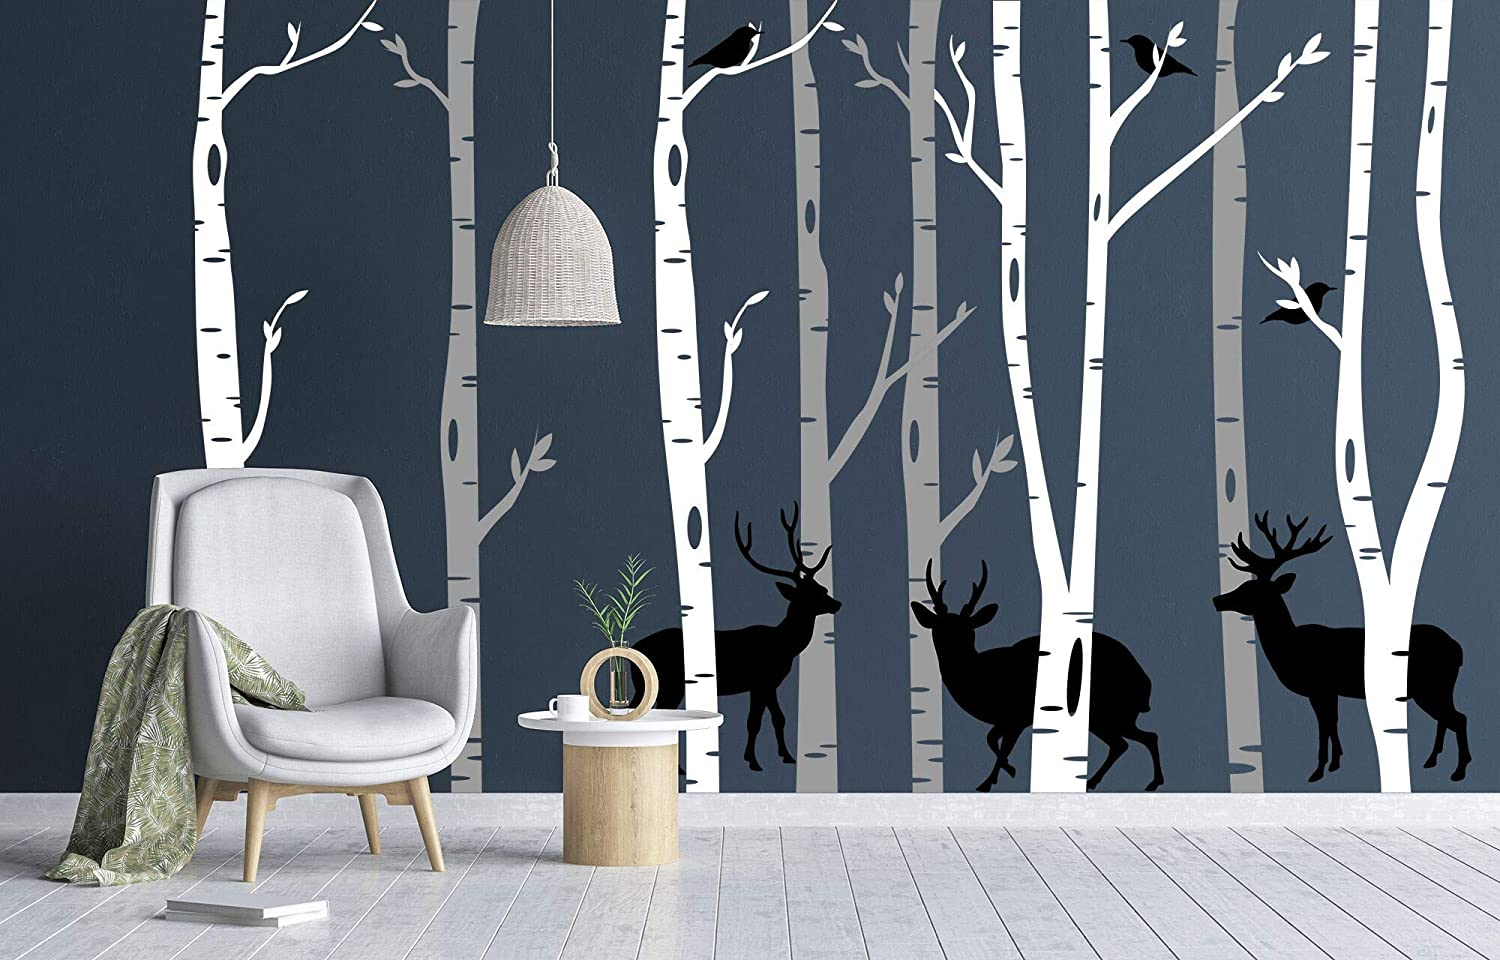 Birch Tree Wall Decal for Living Room | Nursery Tree Vinyl Peel & Stick Mural | Diy Wall Art Stickers Nature Woodland Scene Designed With Deer & Birds (3 White & 3 Grey Trees + 3 Deer)